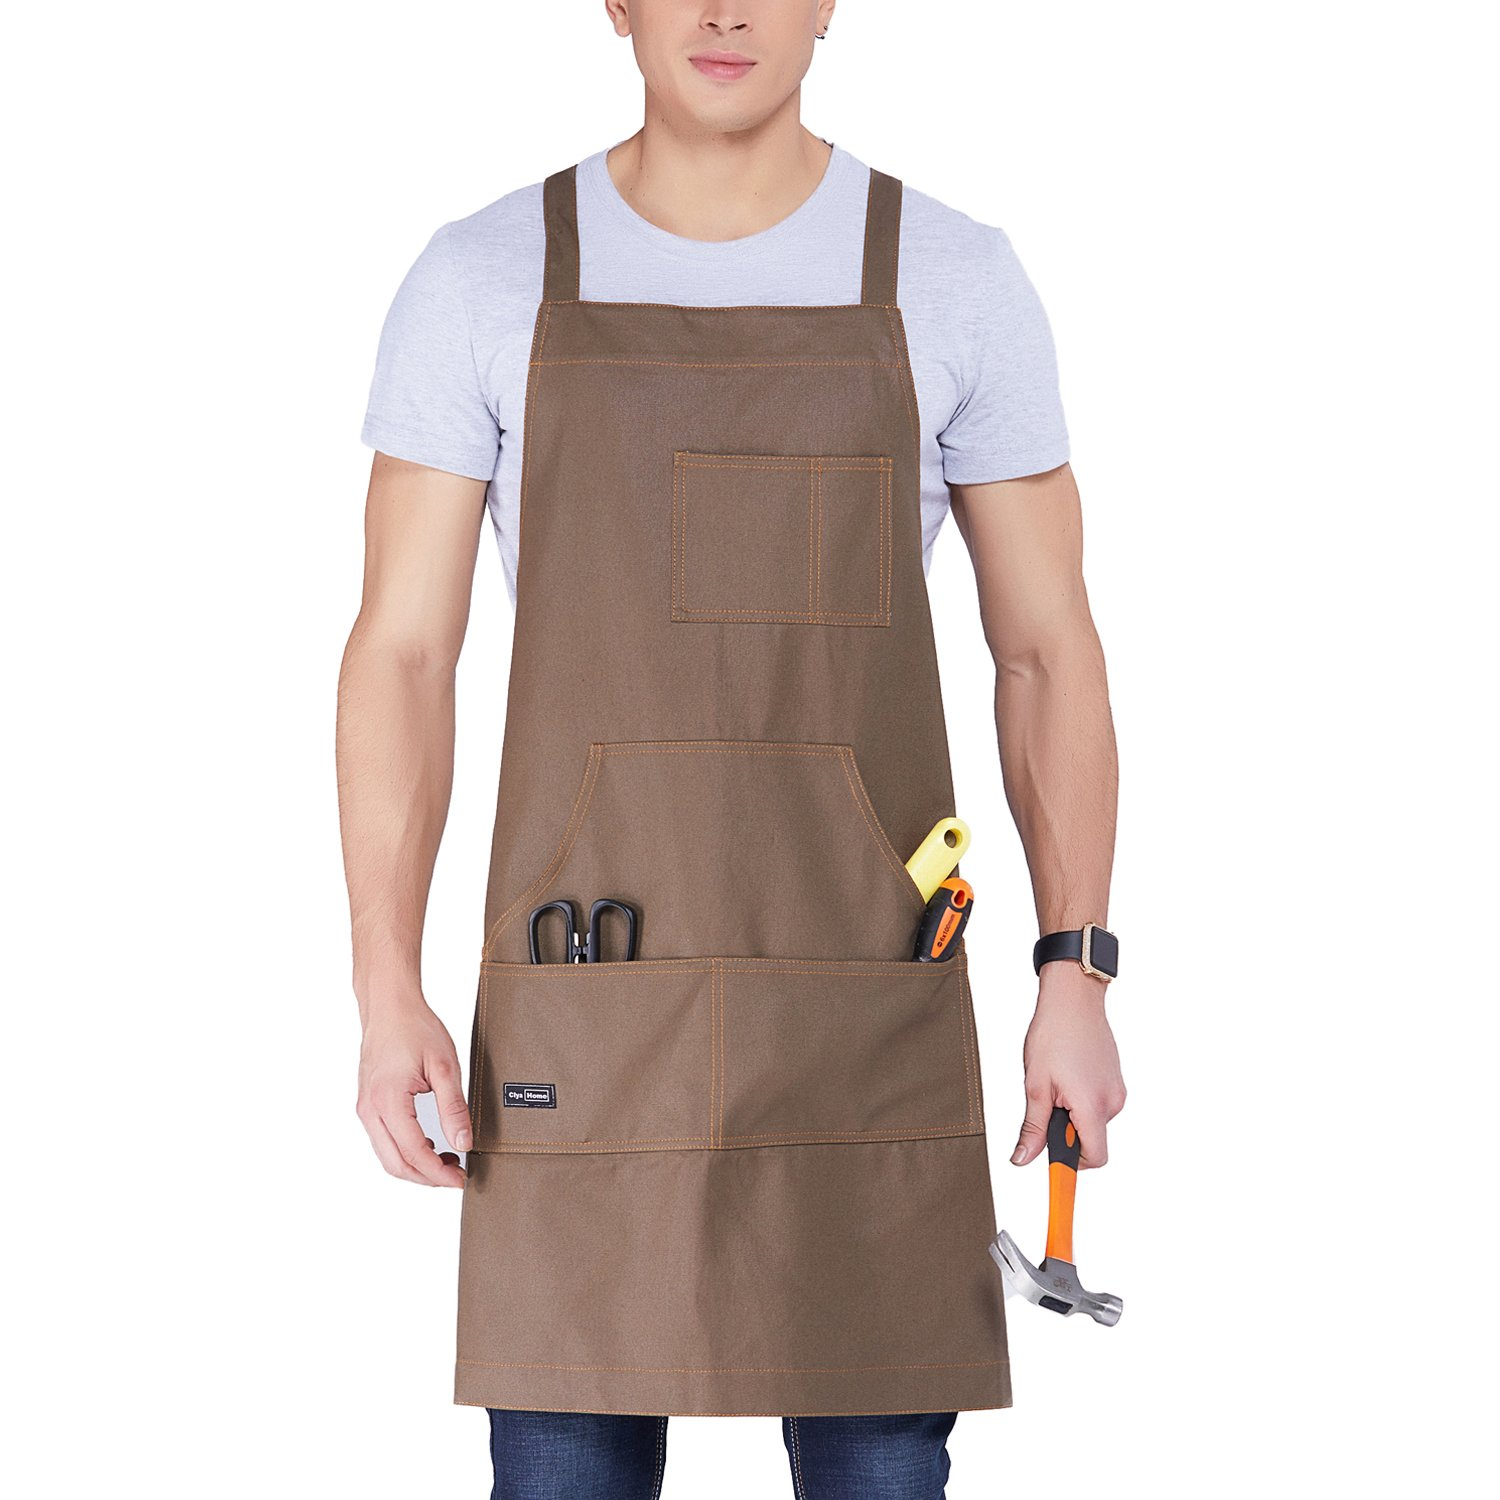 Clya Home Waxed Canvas Work Apron, Heavy Duty Tool Apron with big pockets, Cross-Back Straps Shop Apron Adjustable M to XXL for Women and Men (Brown)